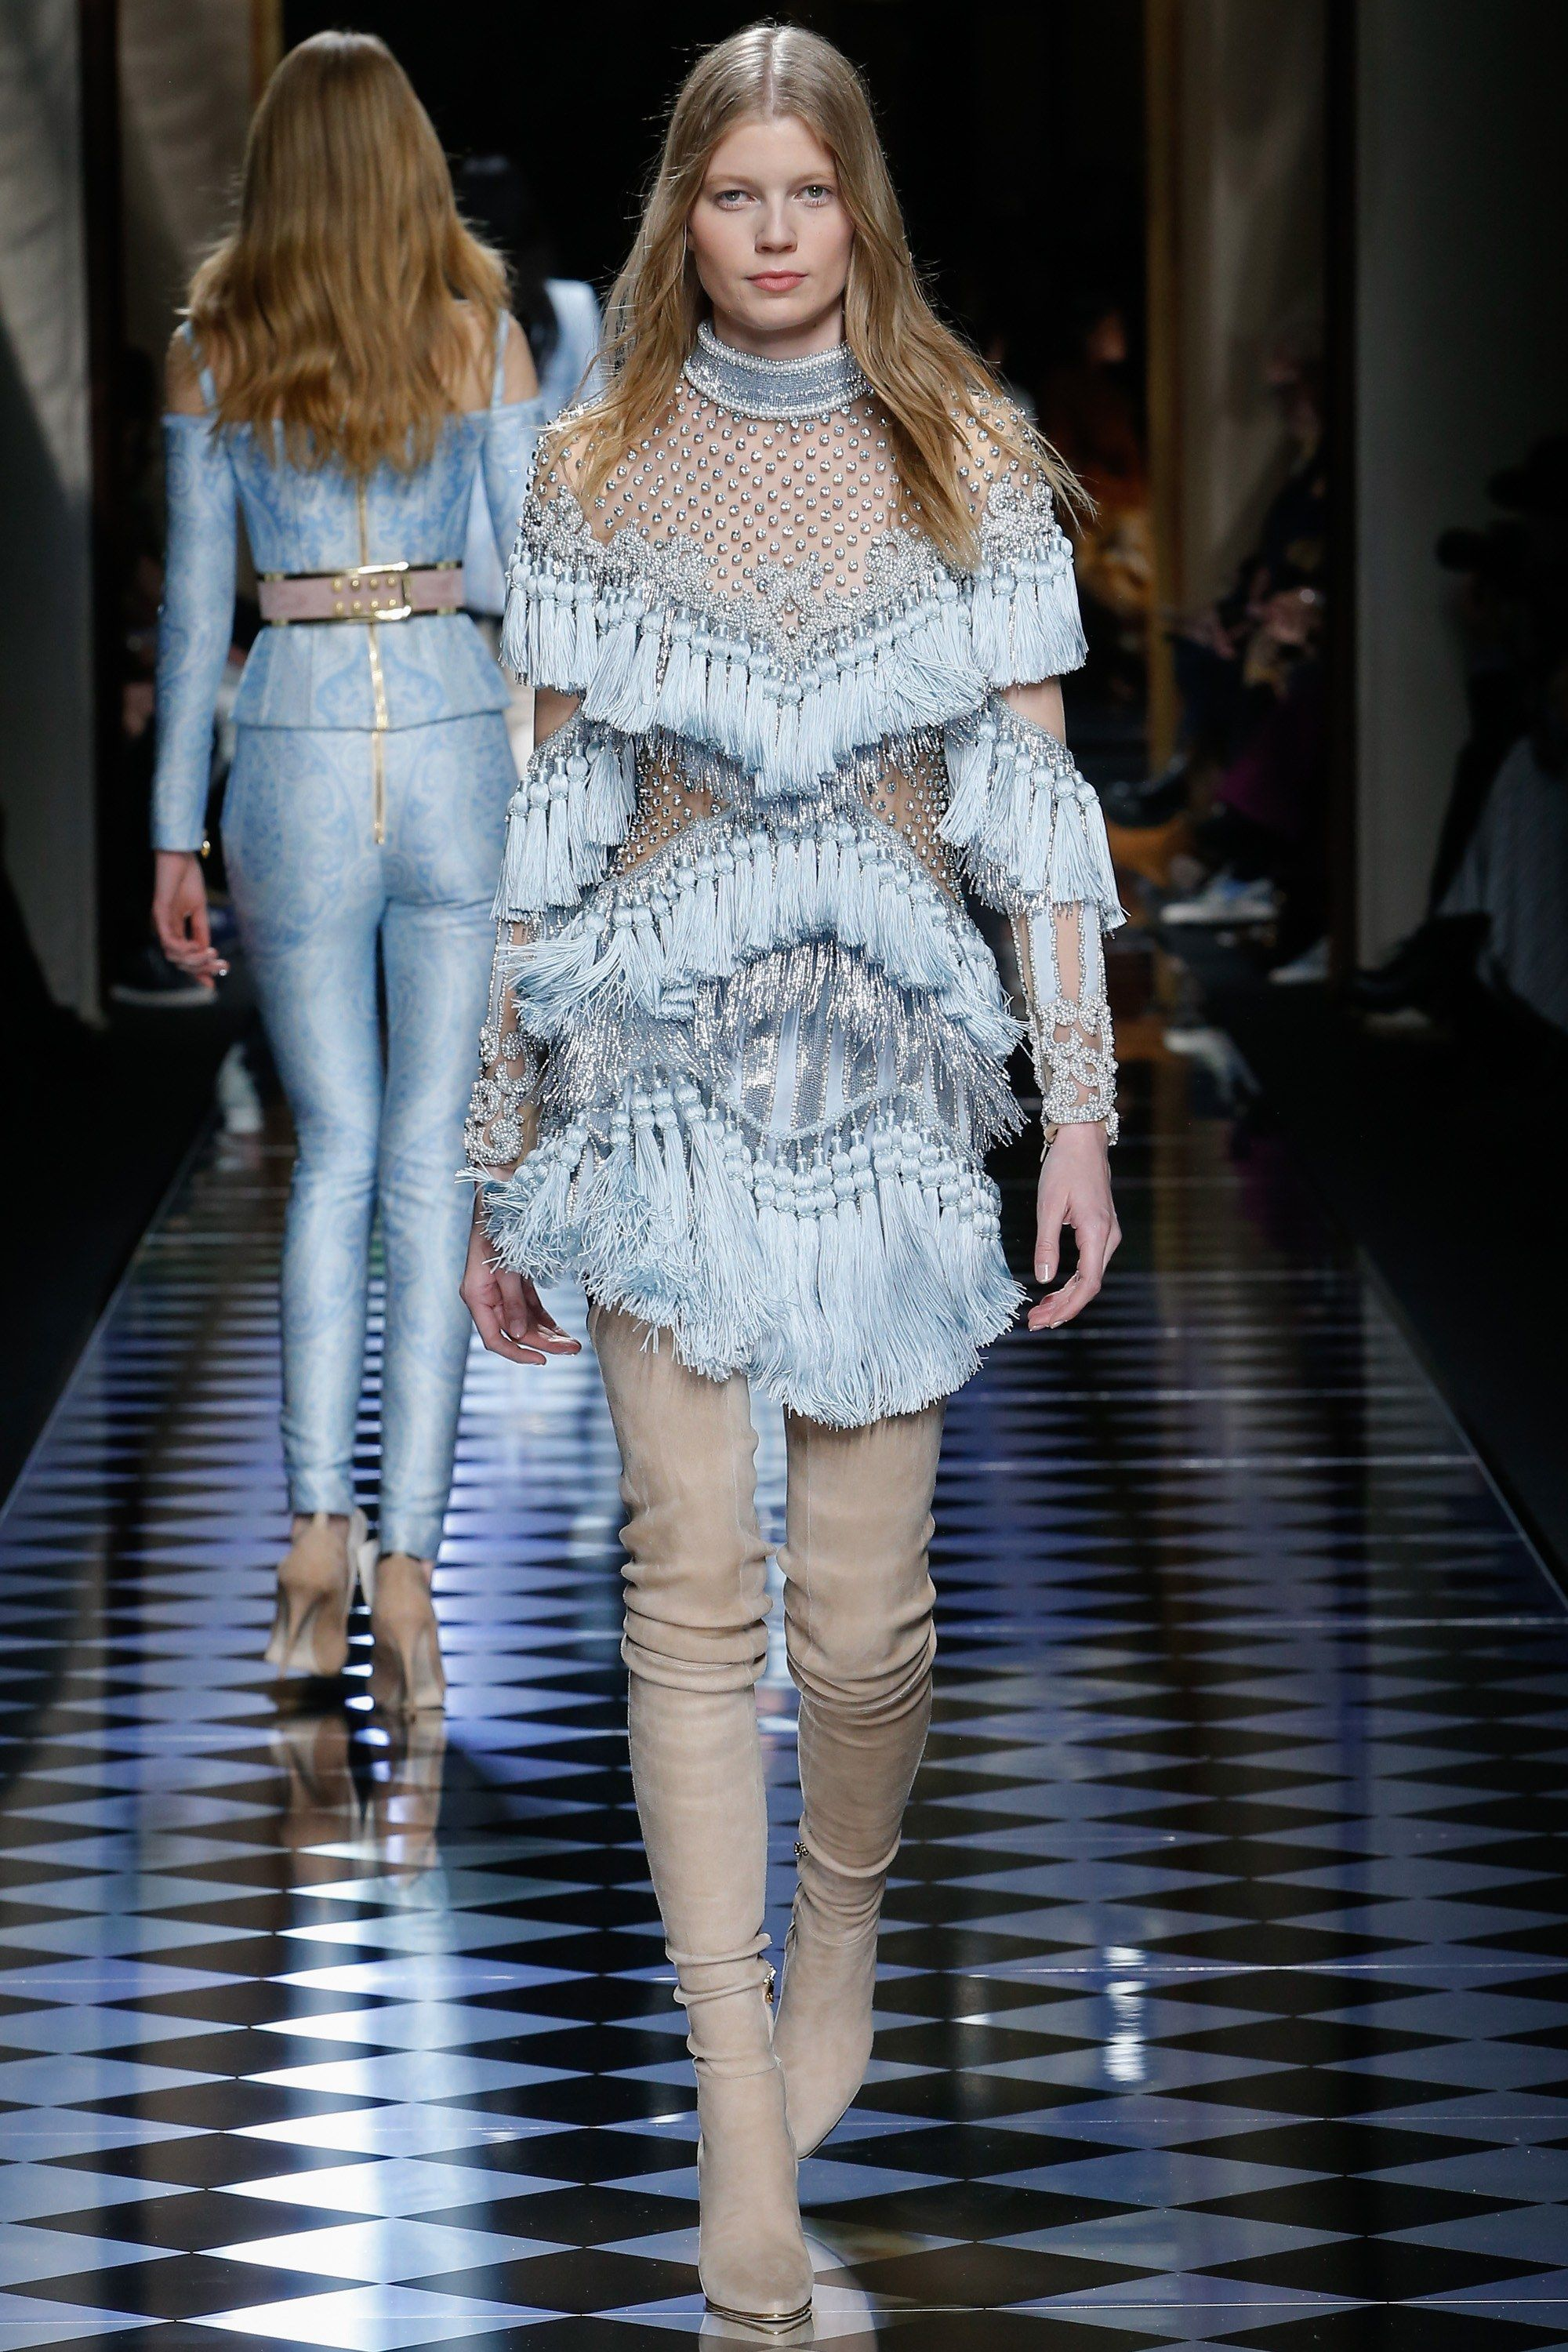 Balmain Fall Winter Ready To Wear Collection Via Designer Olivier Rousteing Modeled By Saara Sihvonen March 3 2016 Paris